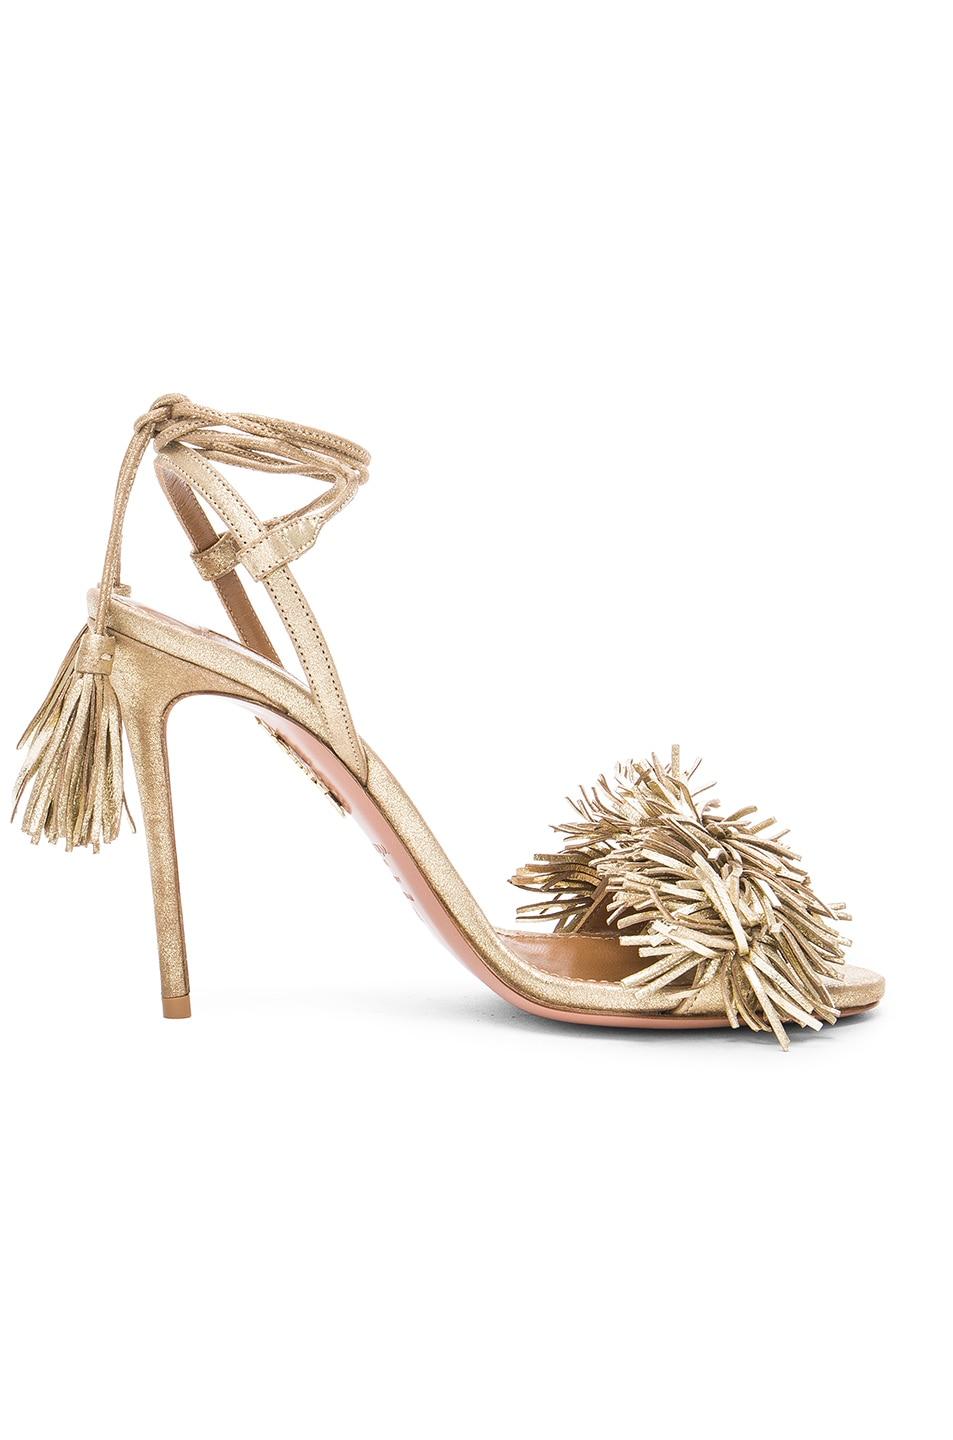 Aquazzura Leather Wild Thing Heels in Light Gold | FWRD